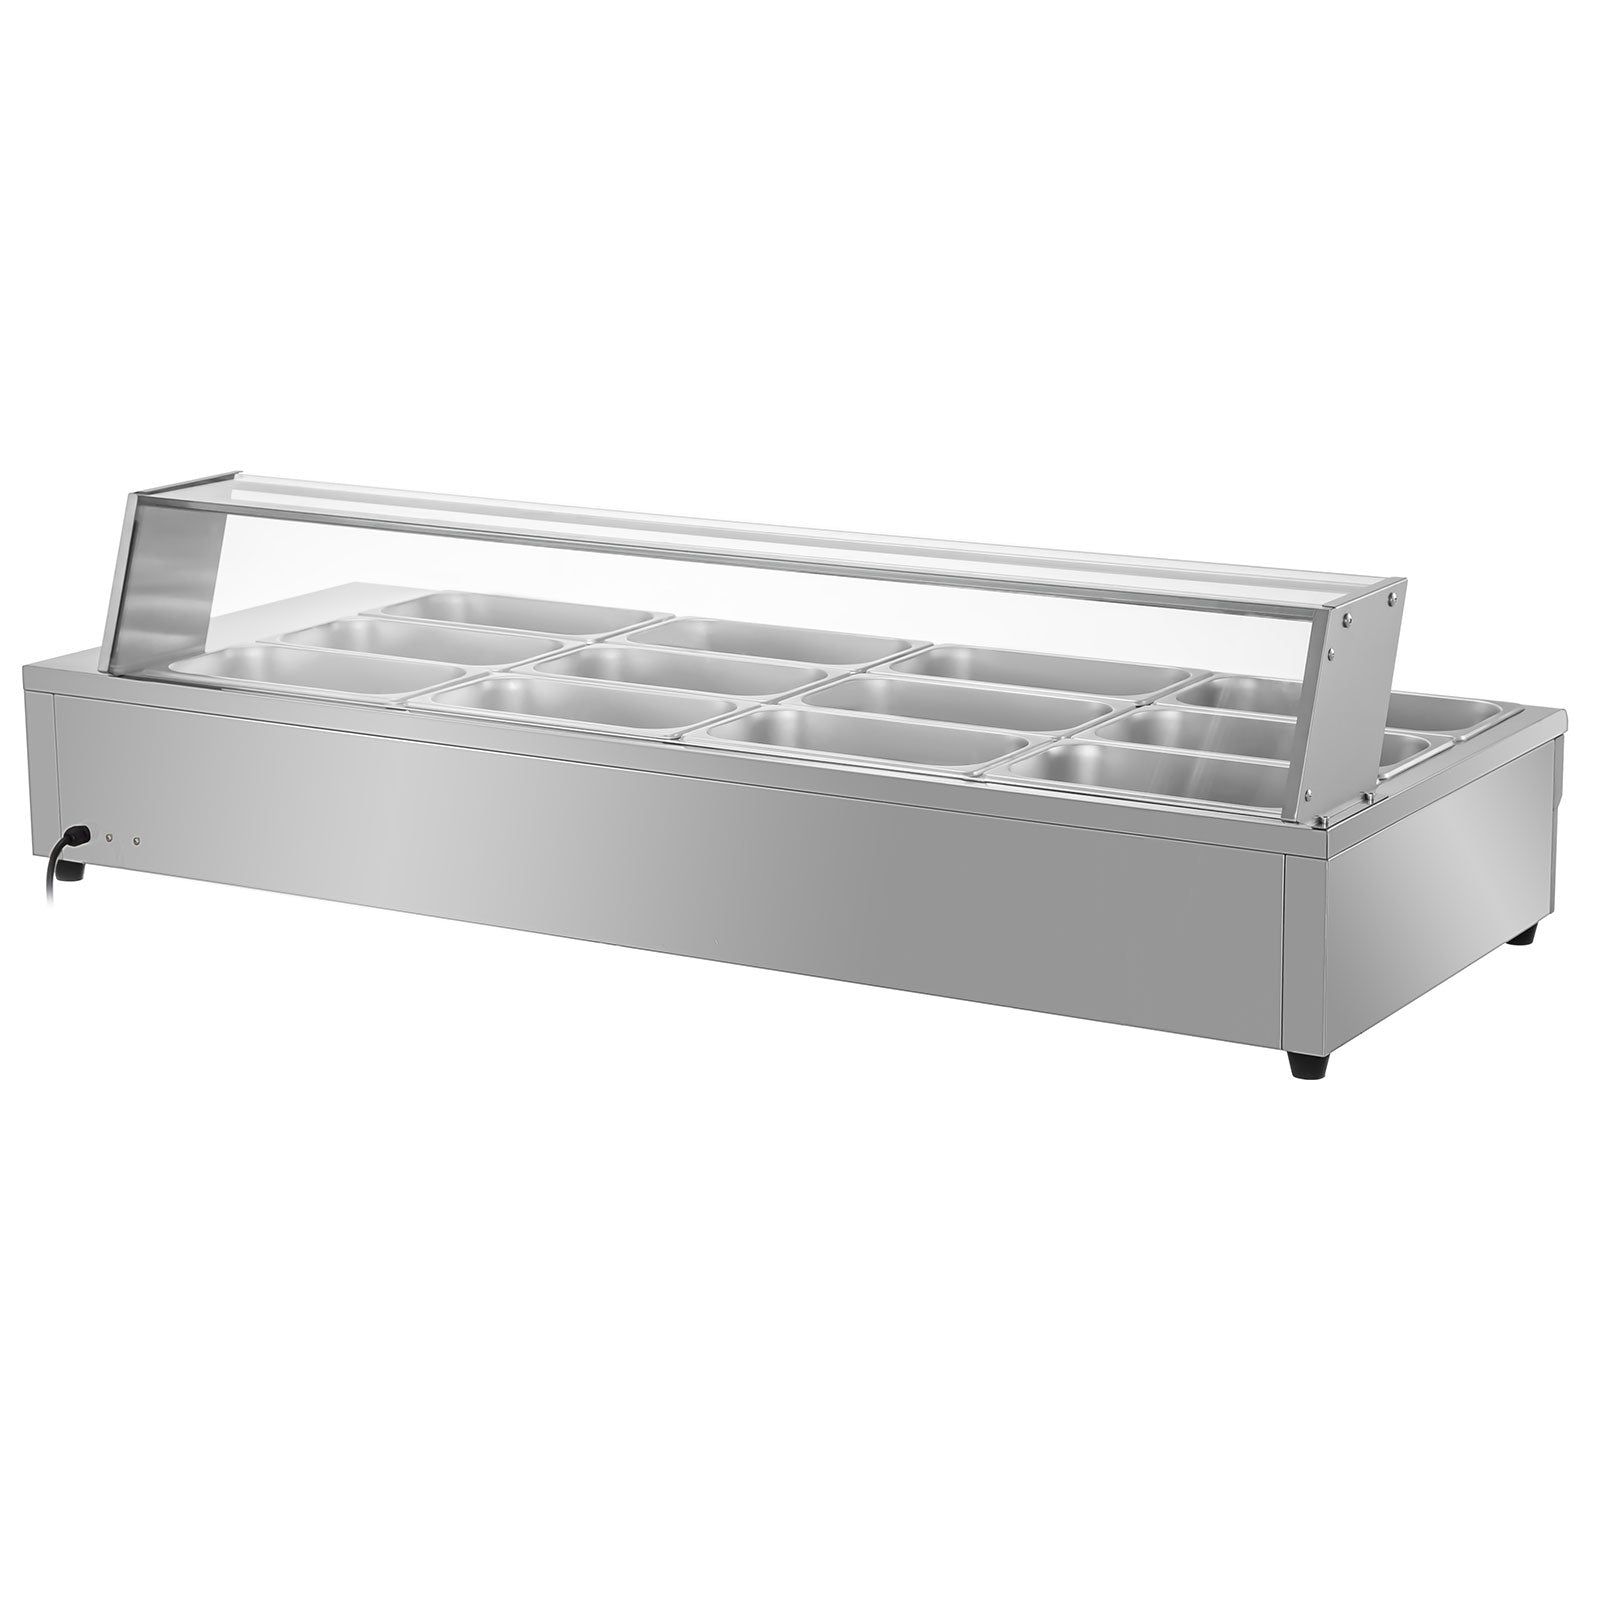 12-pan Bain Marie Food Warmer 6-inch Deep Commercial Food Steam Table 1800w Sus